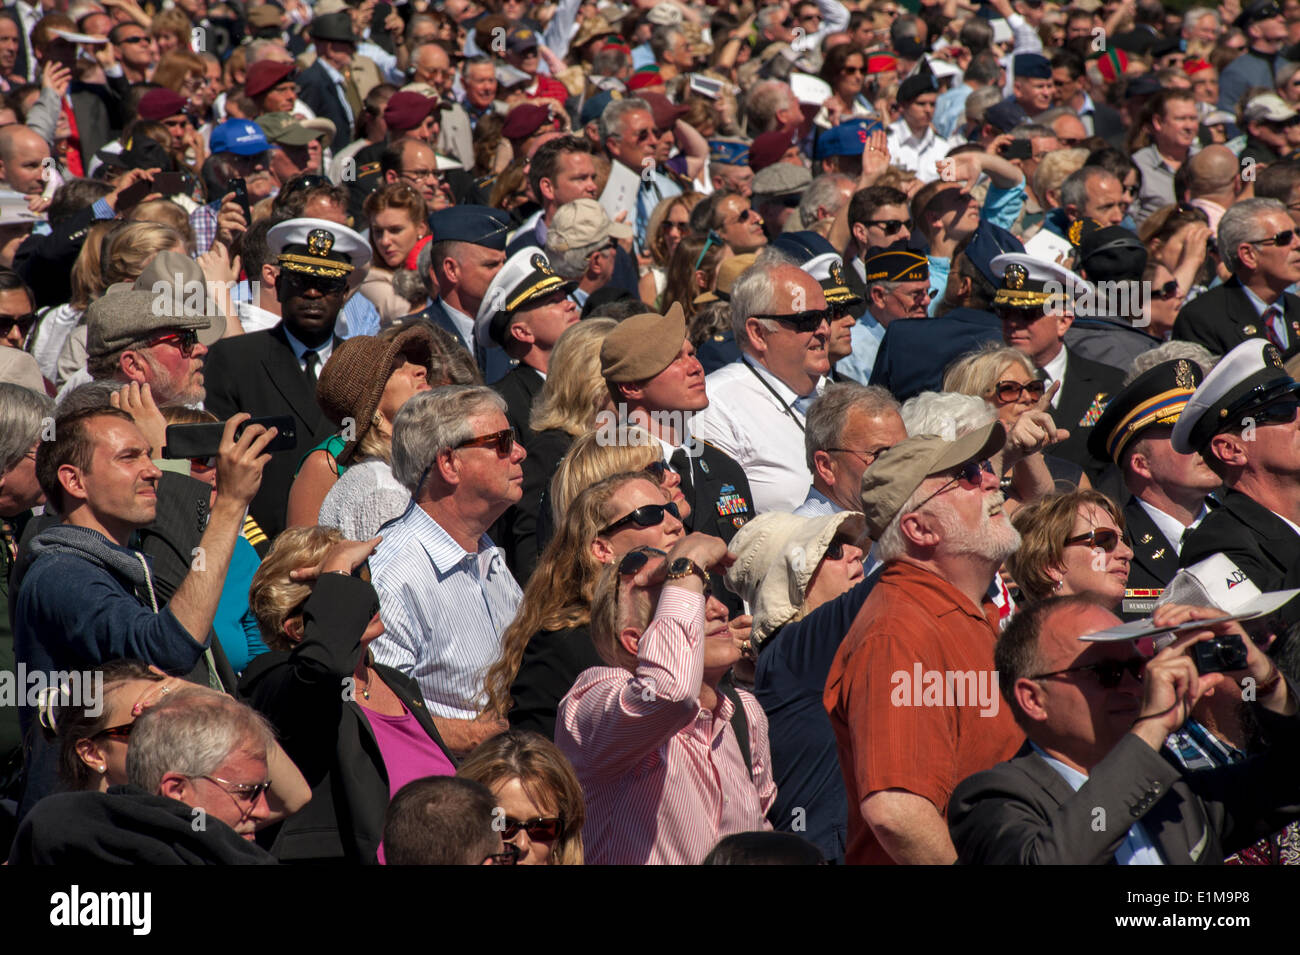 Colleville, Normandy, France. 6th June, D-Day Anniversary Ceremonies, Aerial View of Audience Crowd Scene Stock Photo